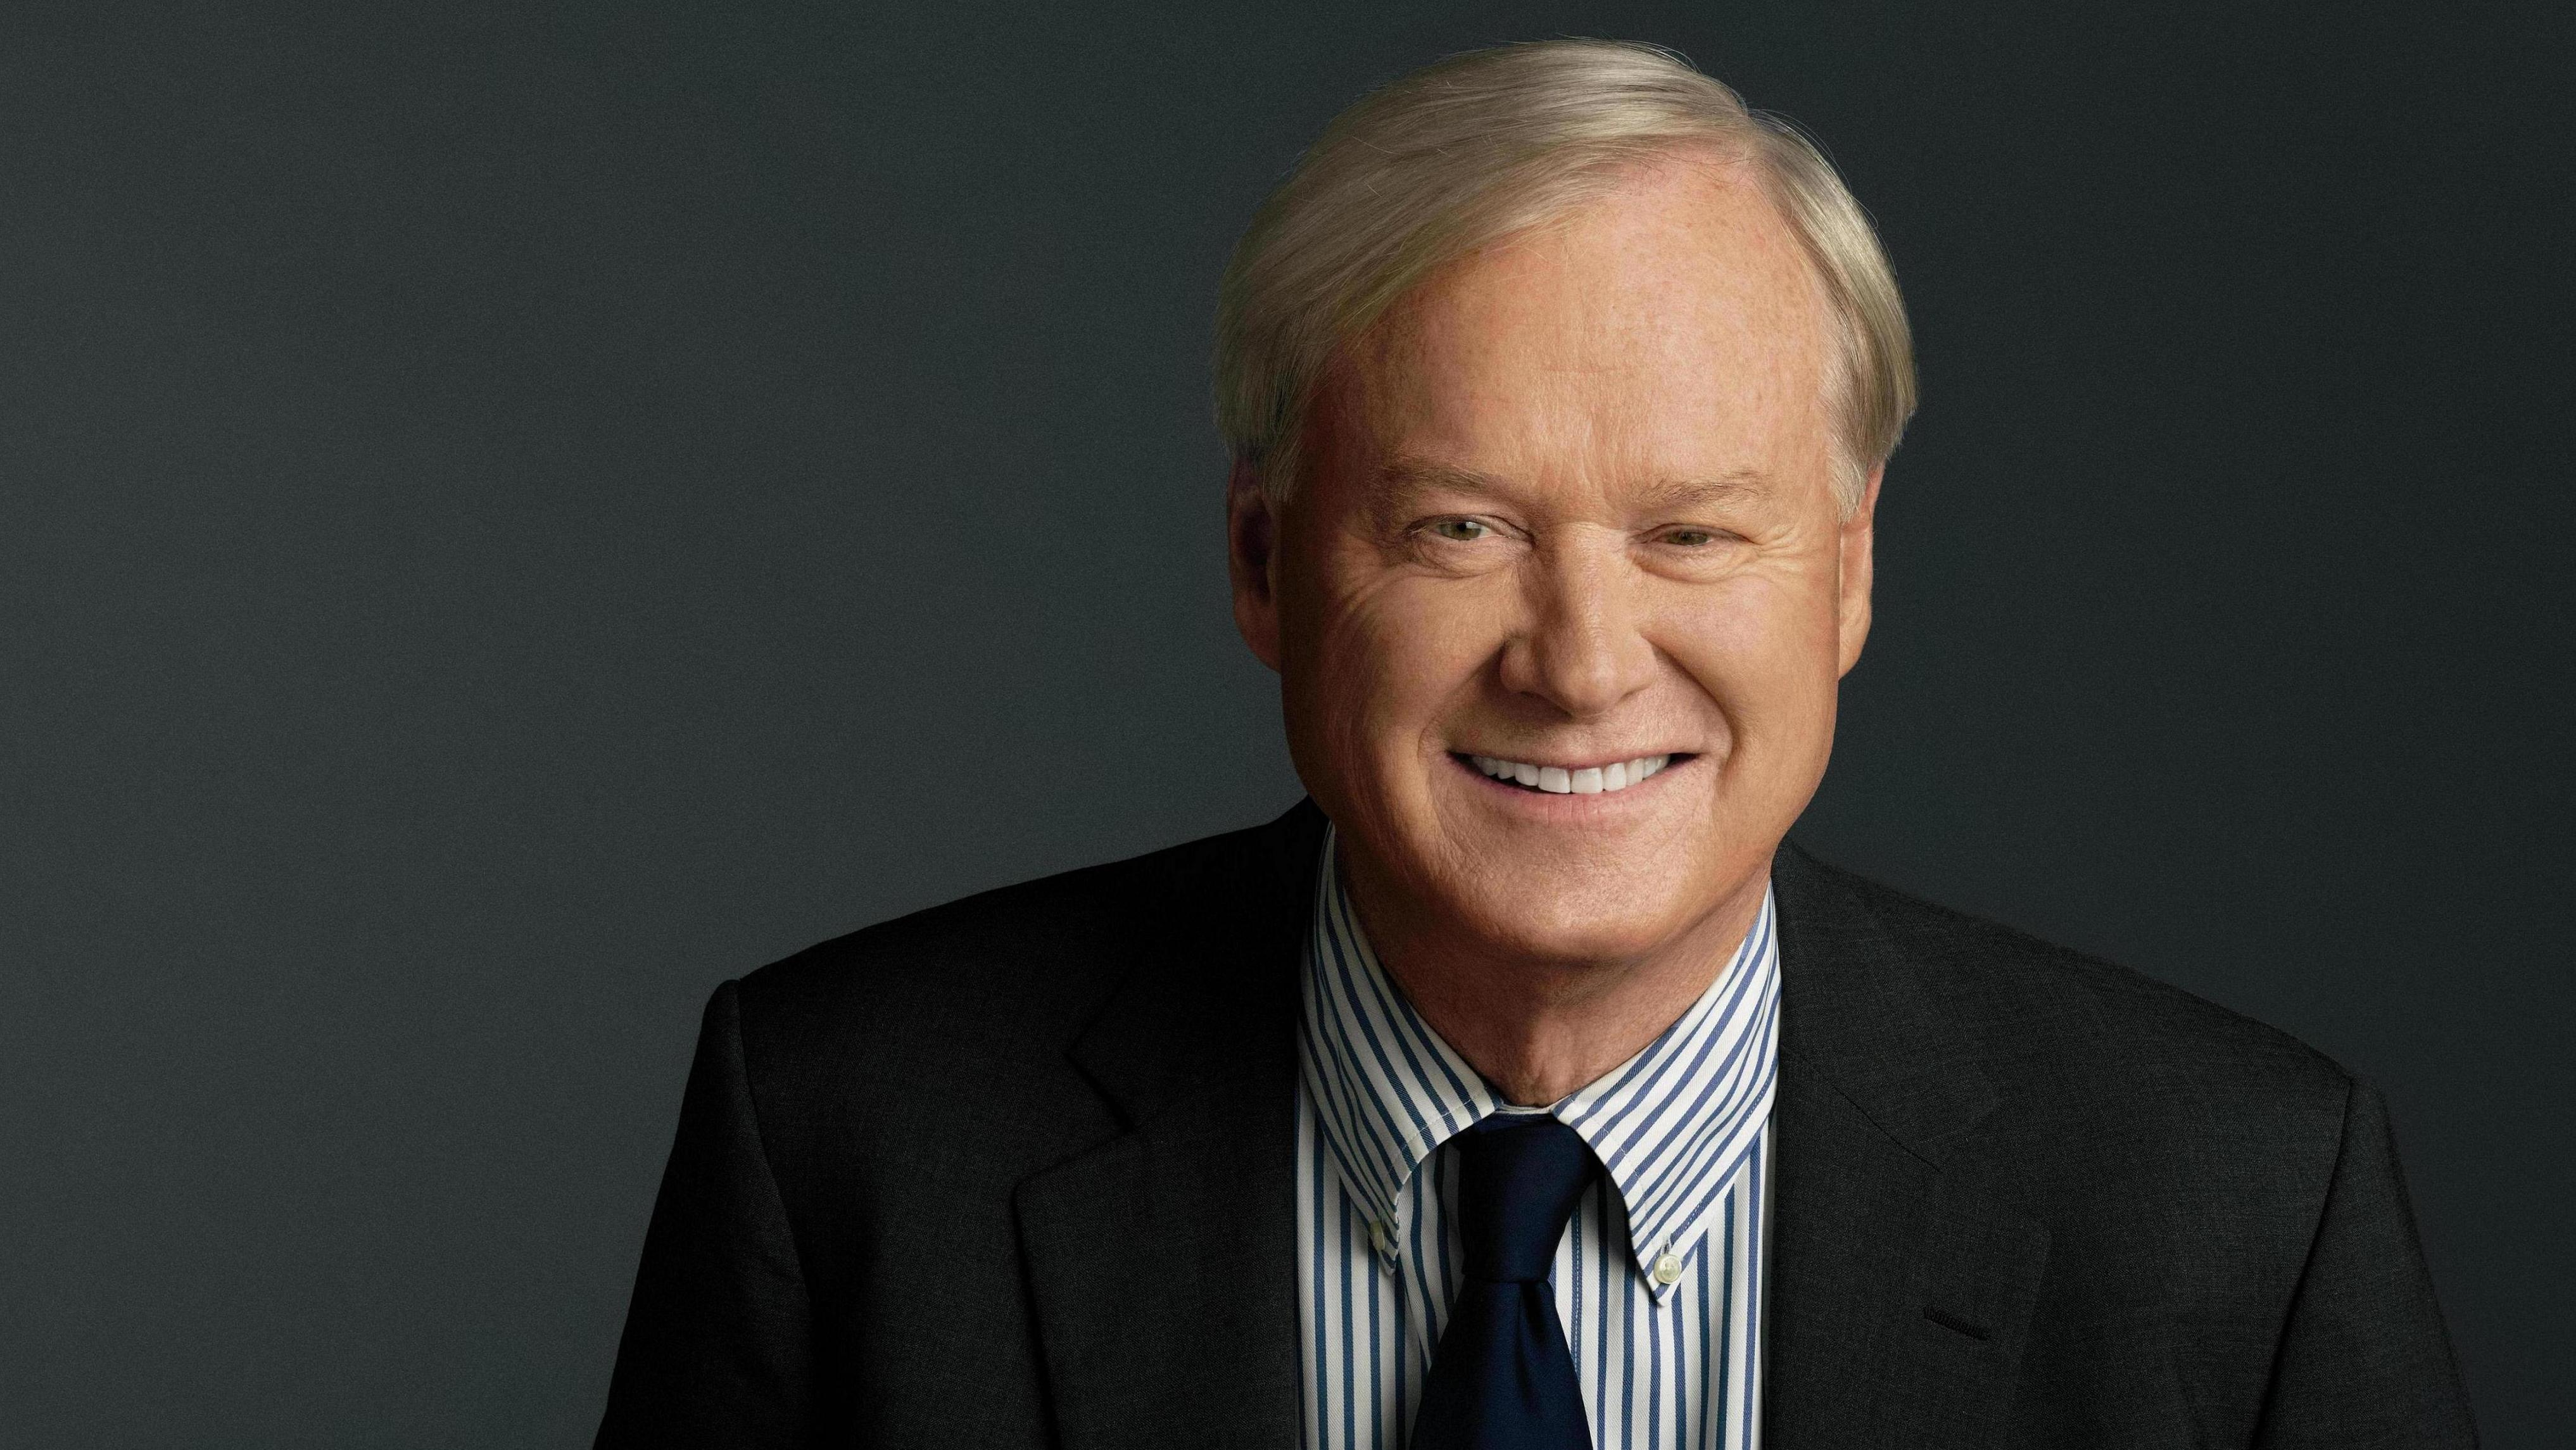 Chris Matthews Looks Back On A Time 'When Politics Worked ...